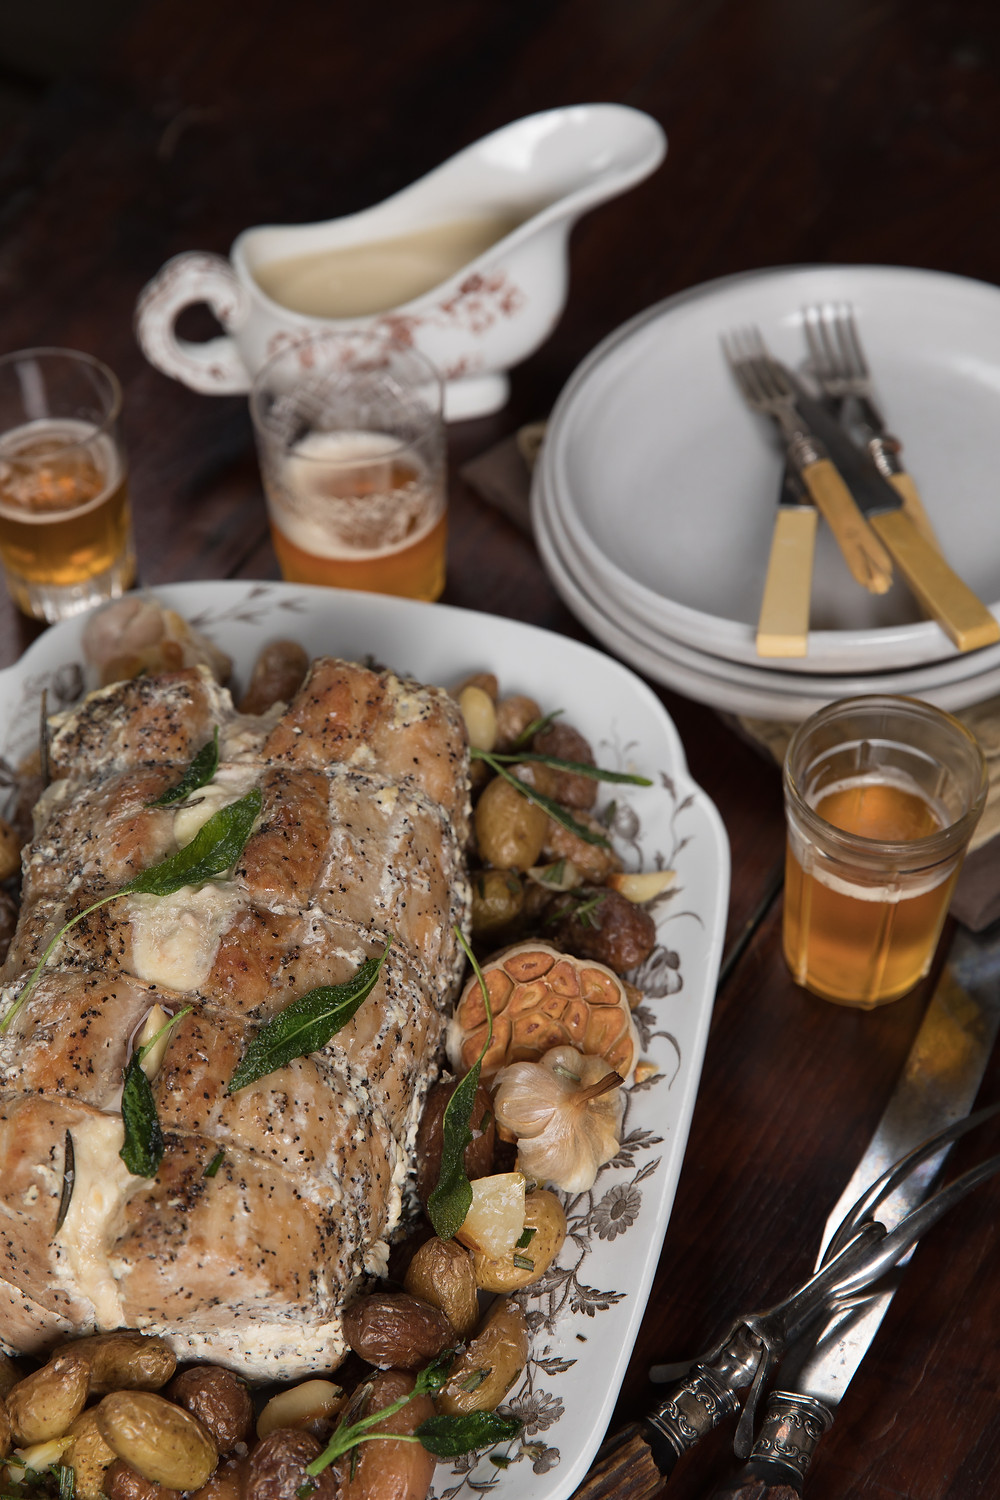 Here's a STUFFED ITALIAN-BRAISED PORK ROAST recipe that goes great with a Goose Island Craft Beer